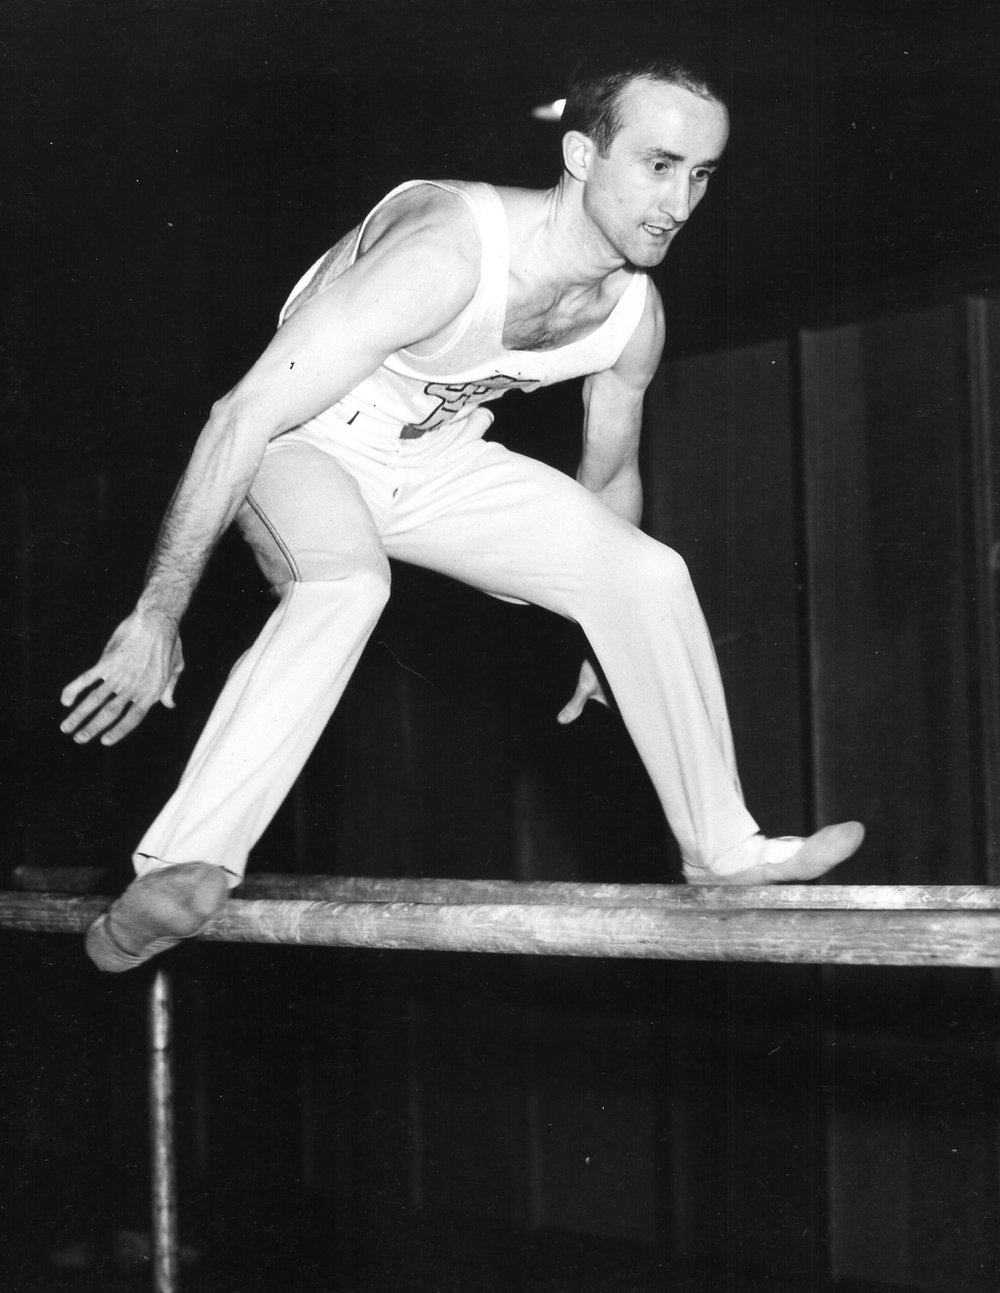 Chuck Pinckney on Parallel Bars (1951)